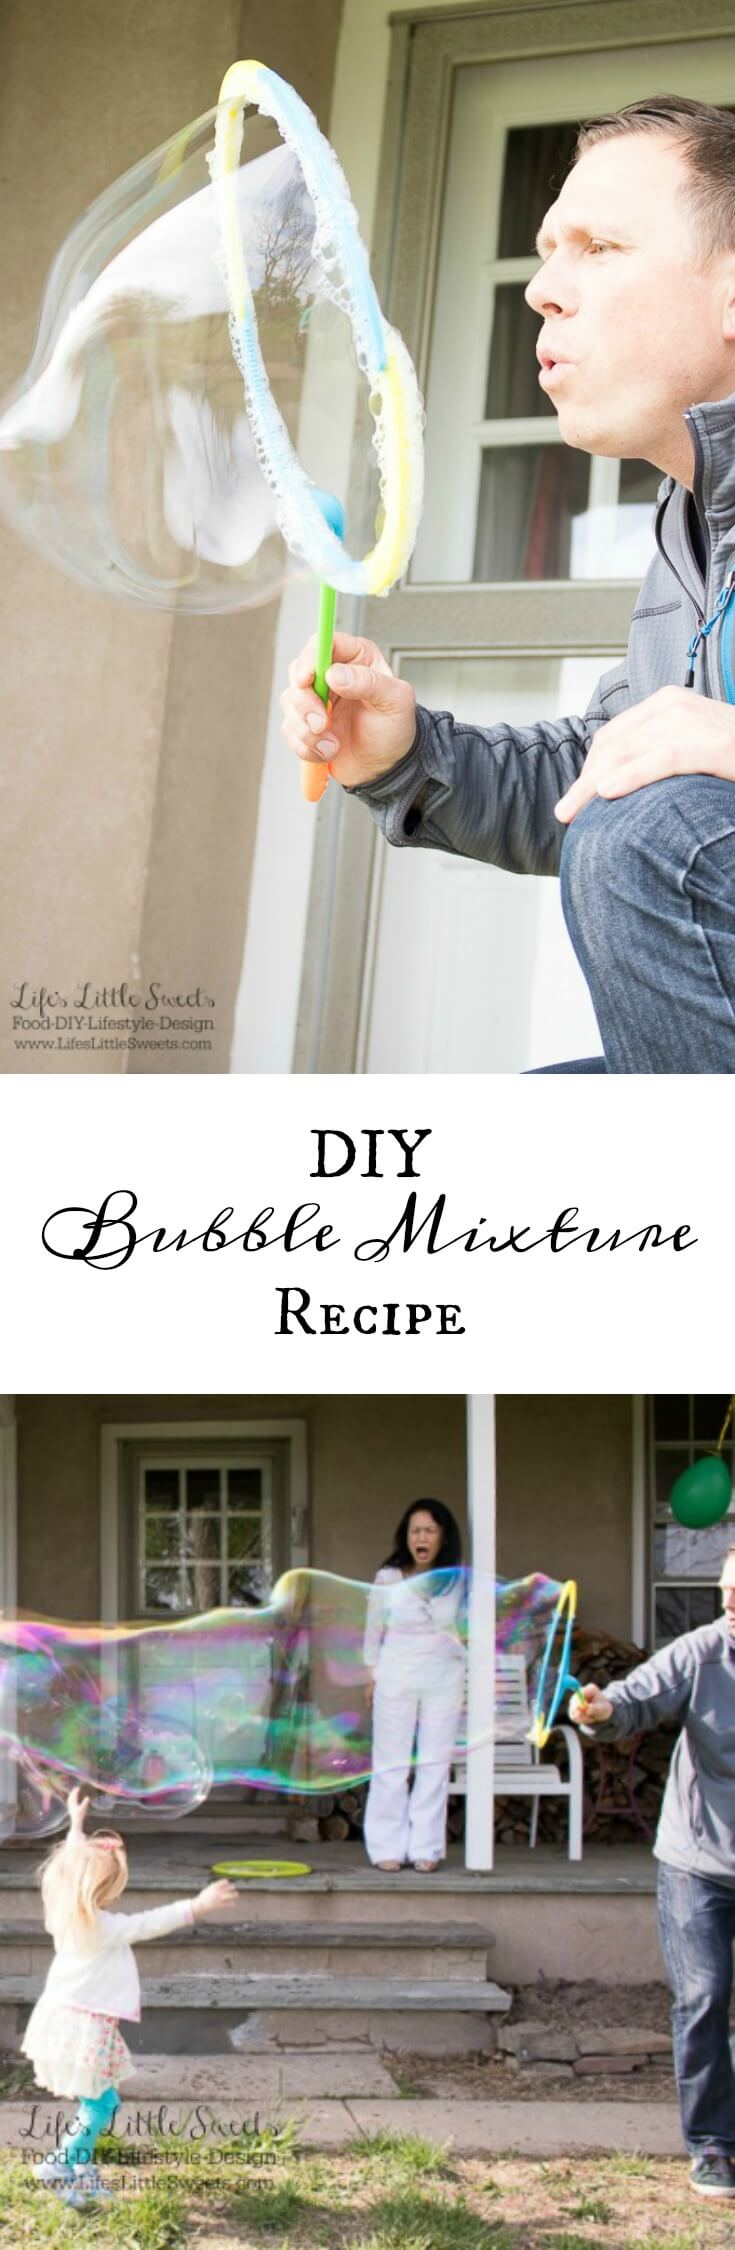 Diy bubble mixture recipe dawn dish soap light corn for How to make bubbles liquid at home